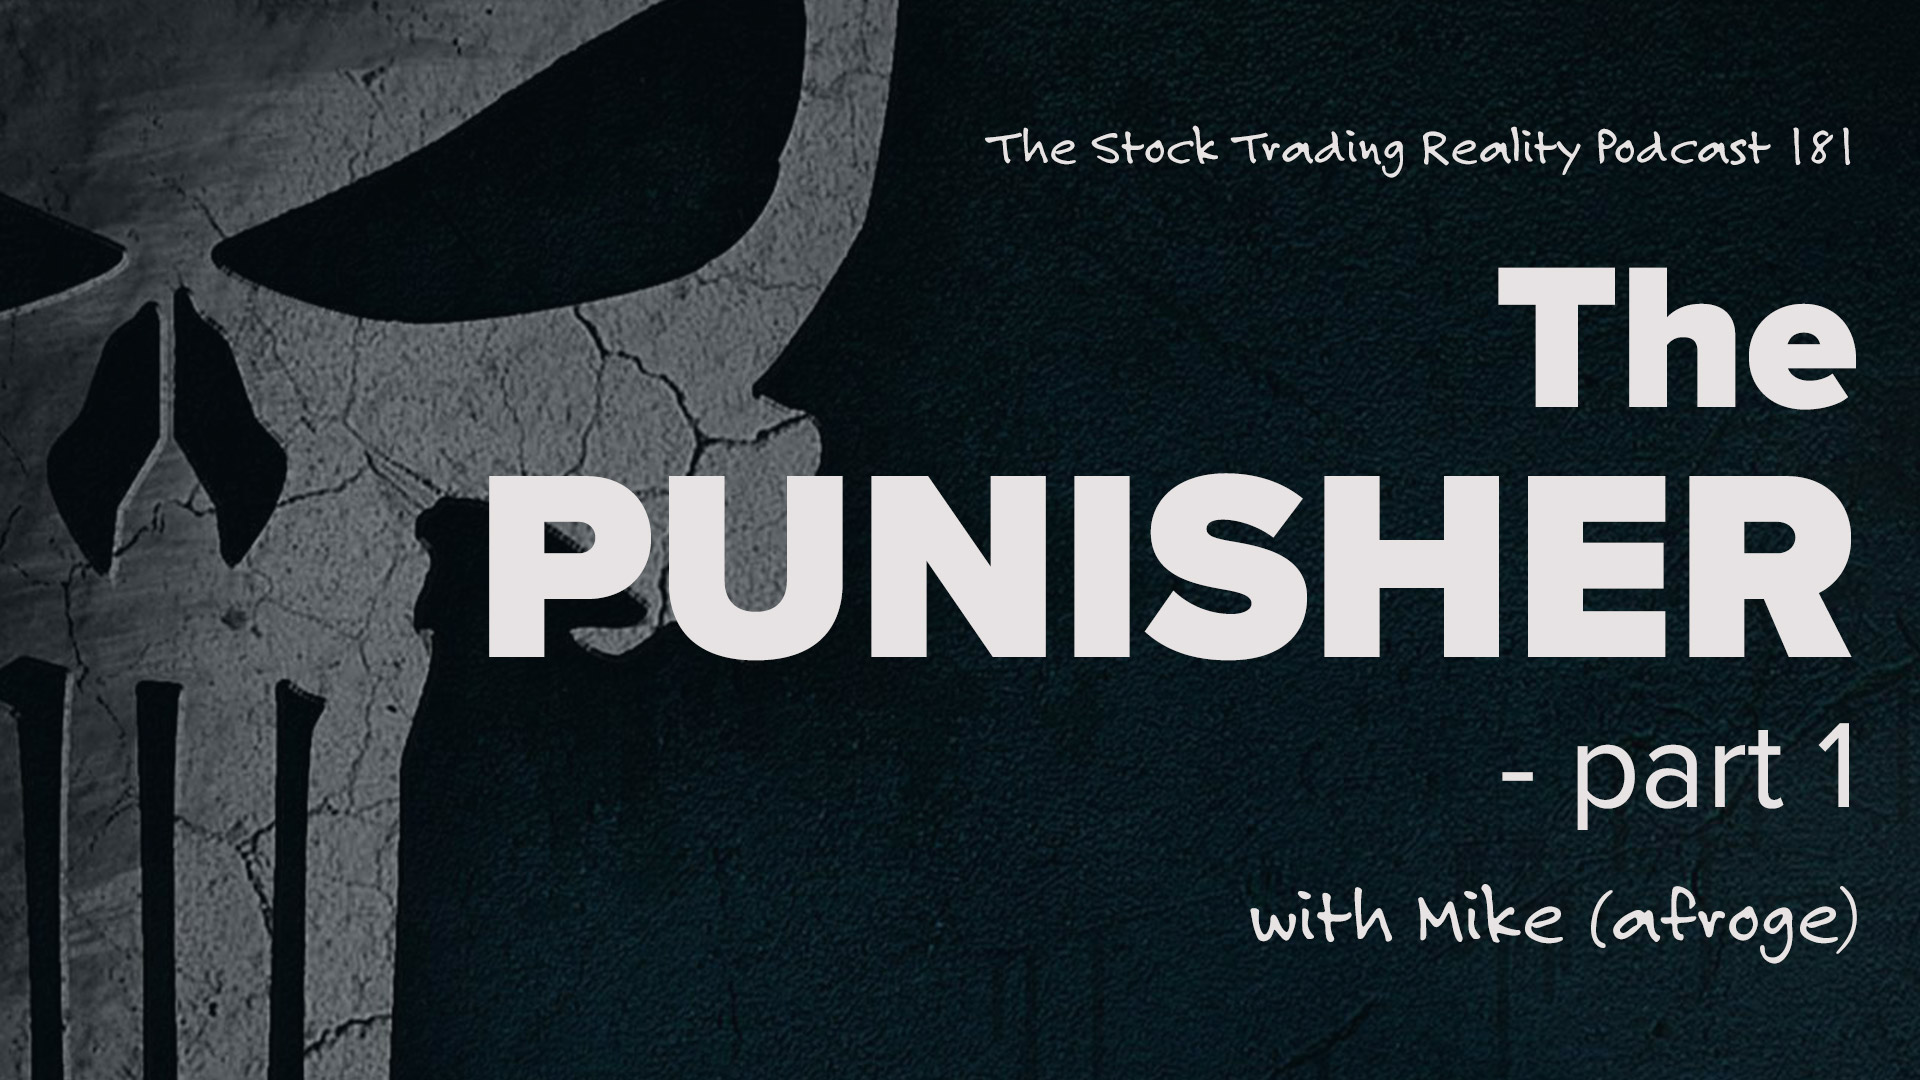 STR 181: The Punisher - Part 1